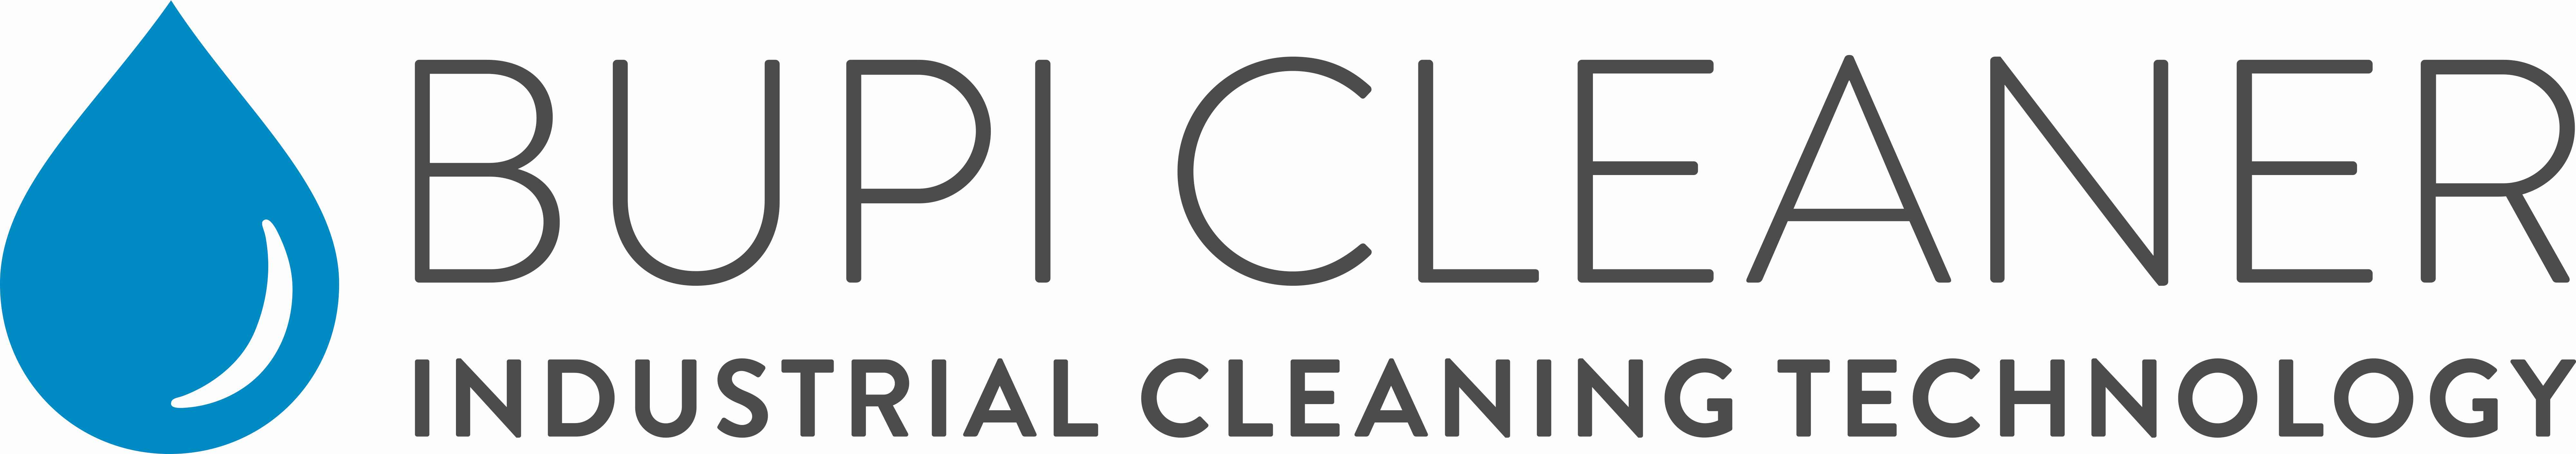 bupi-cleaner-logo-1705233911.jpg